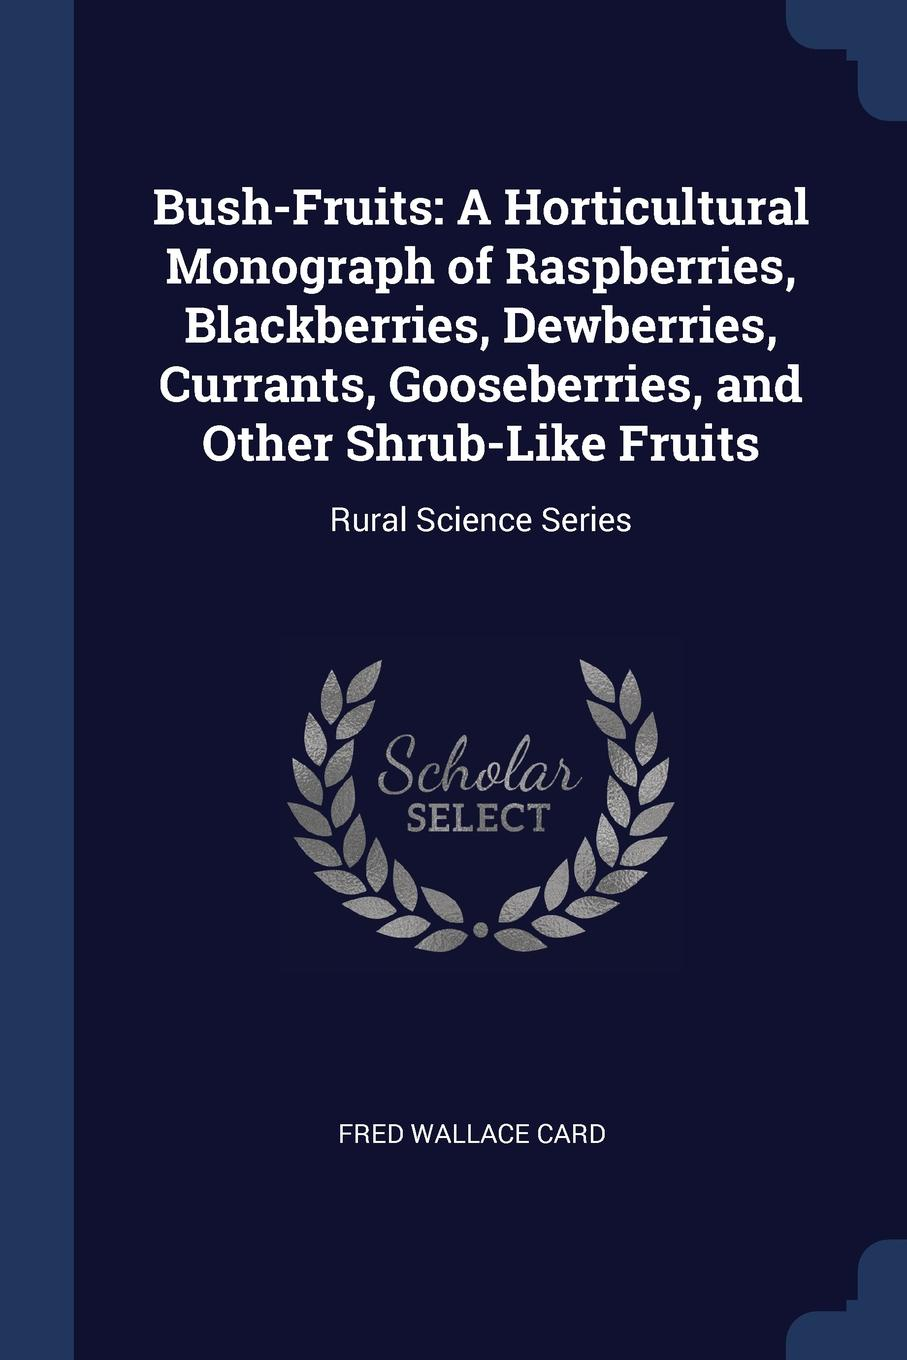 Fred Wallace Card Bush-Fruits. A Horticultural Monograph of Raspberries, Blackberries, Dewberries, Currants, Gooseberries, and Other Shrub-Like Fruits: Rural Science Series